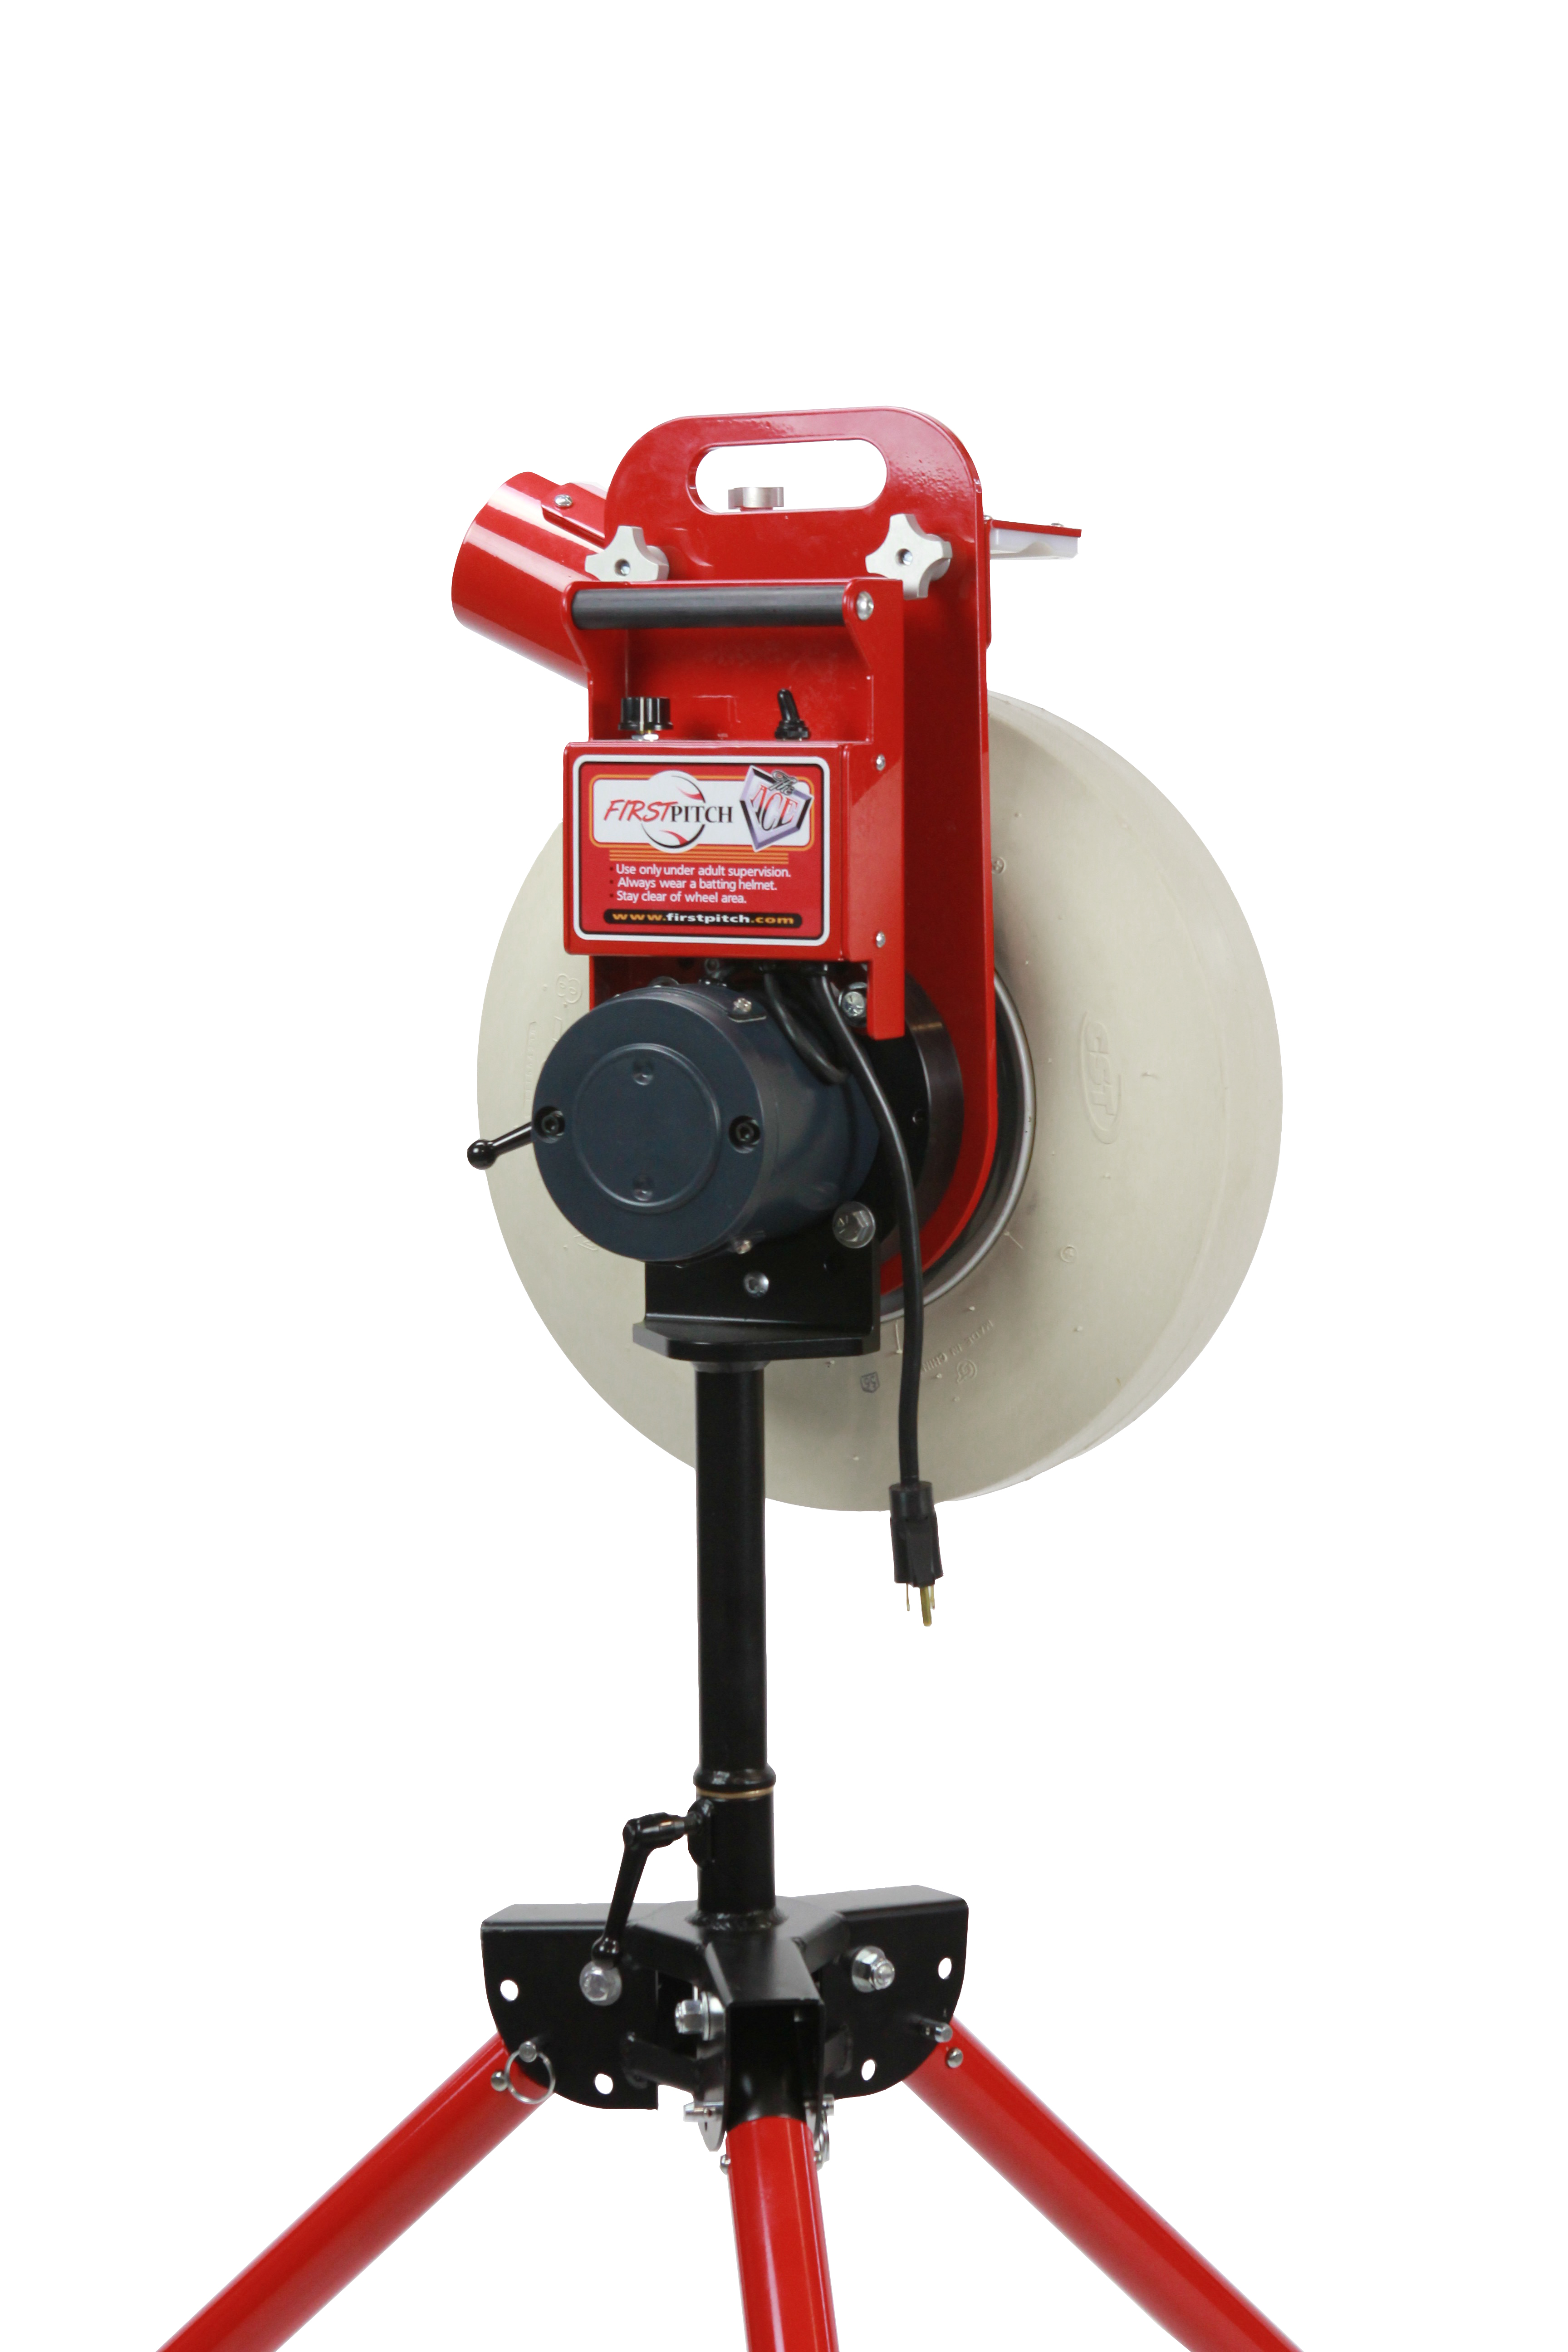 Ace - First Pitch | Pitching Machines | Free US Shipping